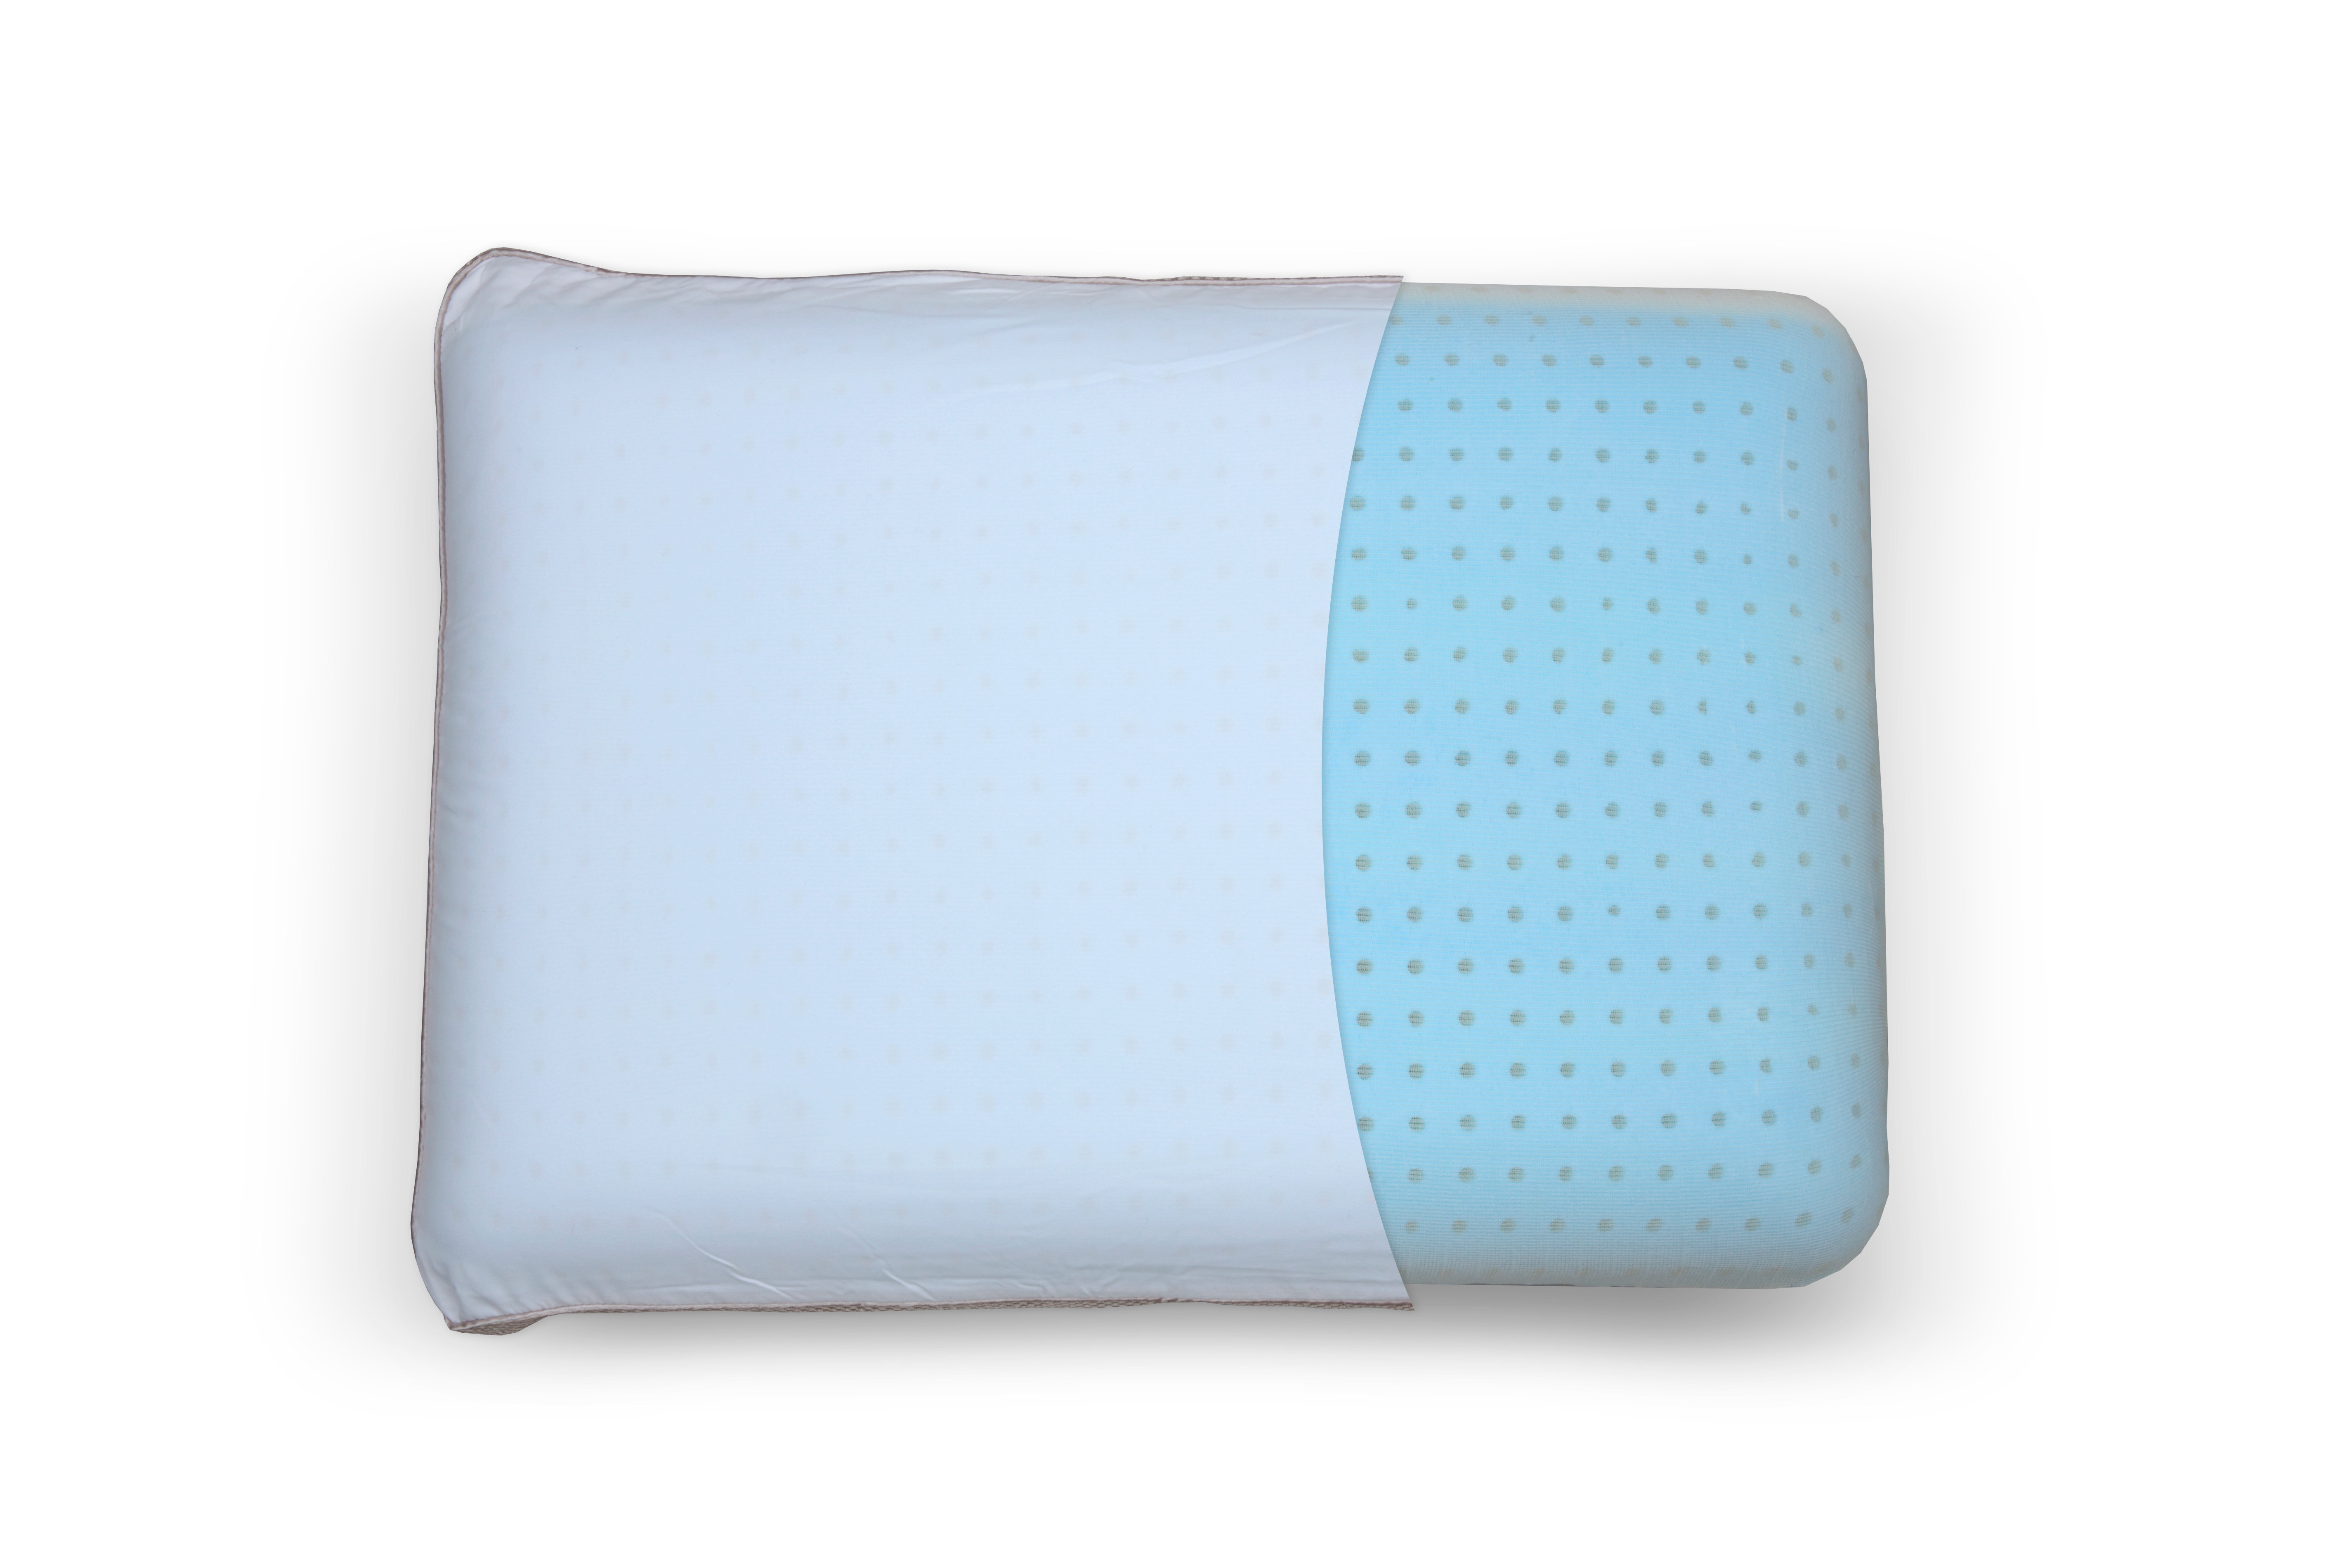 products hydraluxeair down cooling pillow revolution hydraluxe air pillows side comfort alternative